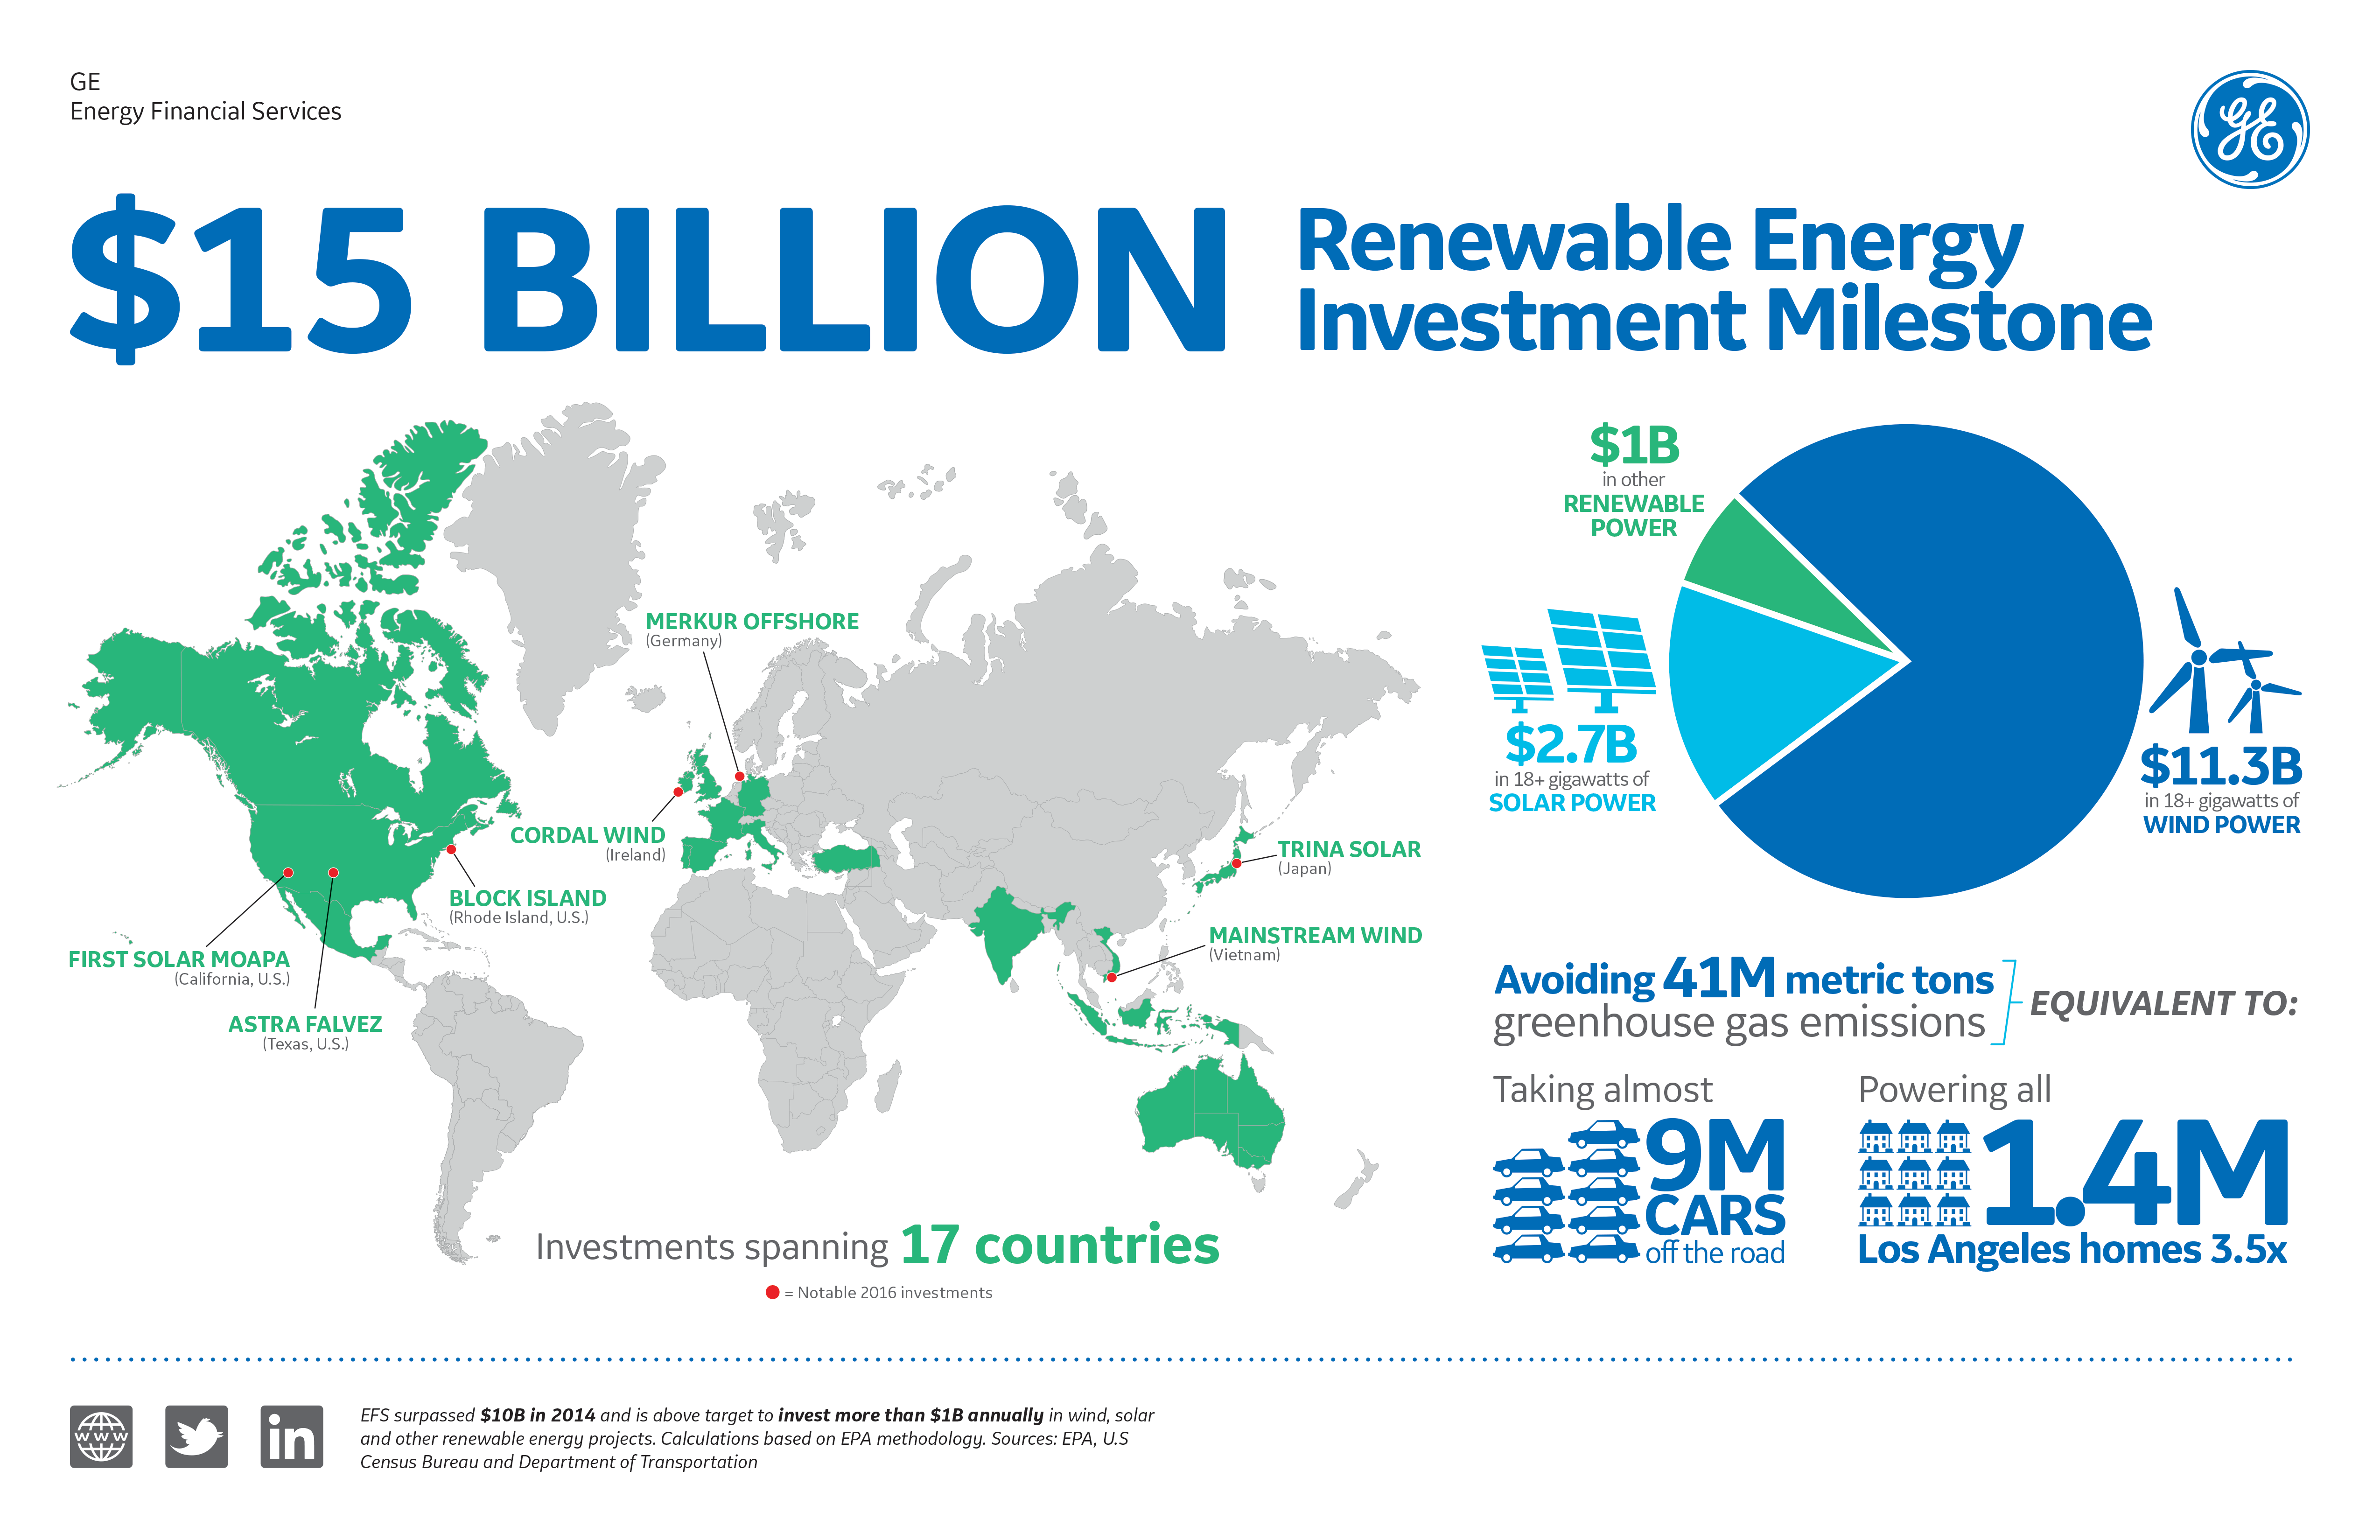 In total, GE Energy Financial Services has surpassed US$15 billion in renewable energy investment commitments. Image: GE